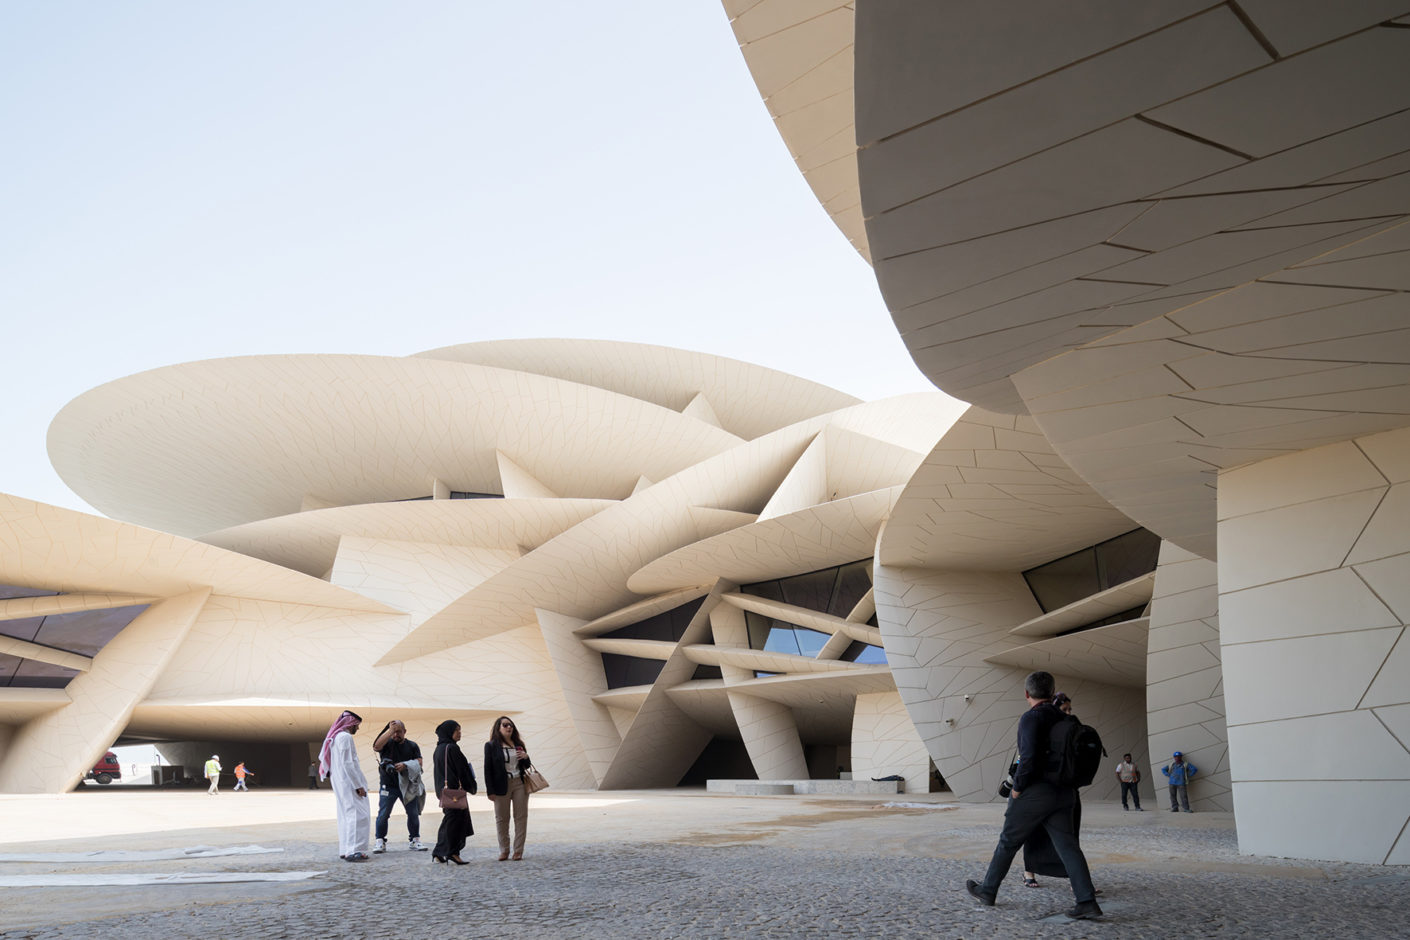 Ateliers Jean Nouvel were inspired by the sand rose, a desert crystal, to create the shape of the National Museum of Qatar.